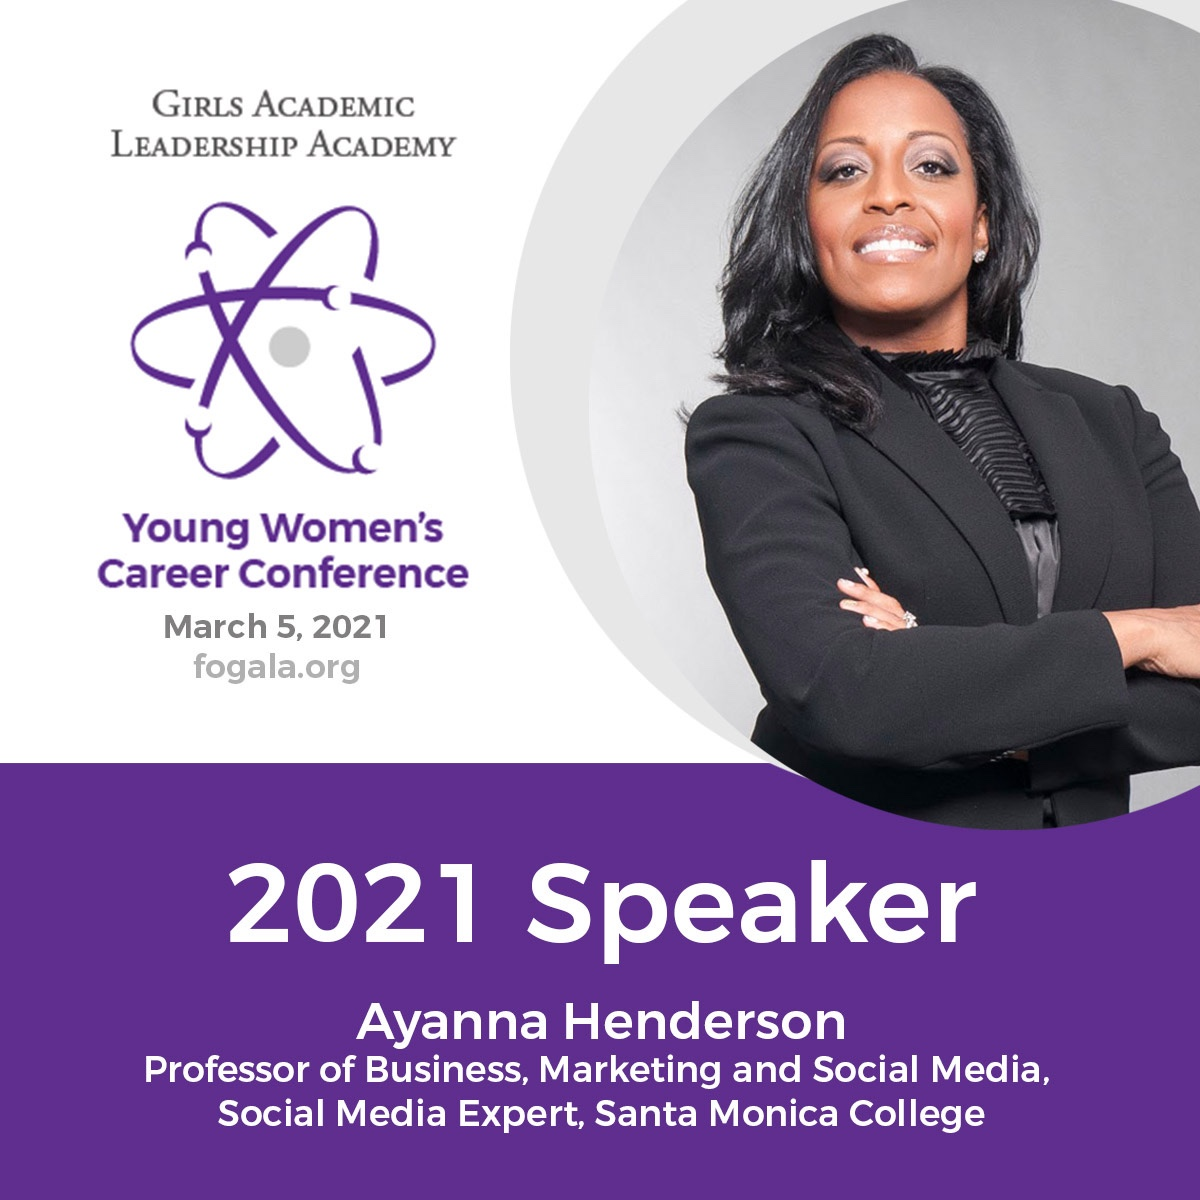 Girls Academic Leadership Academy's Young Women's Career Conference | 2021 Speaker